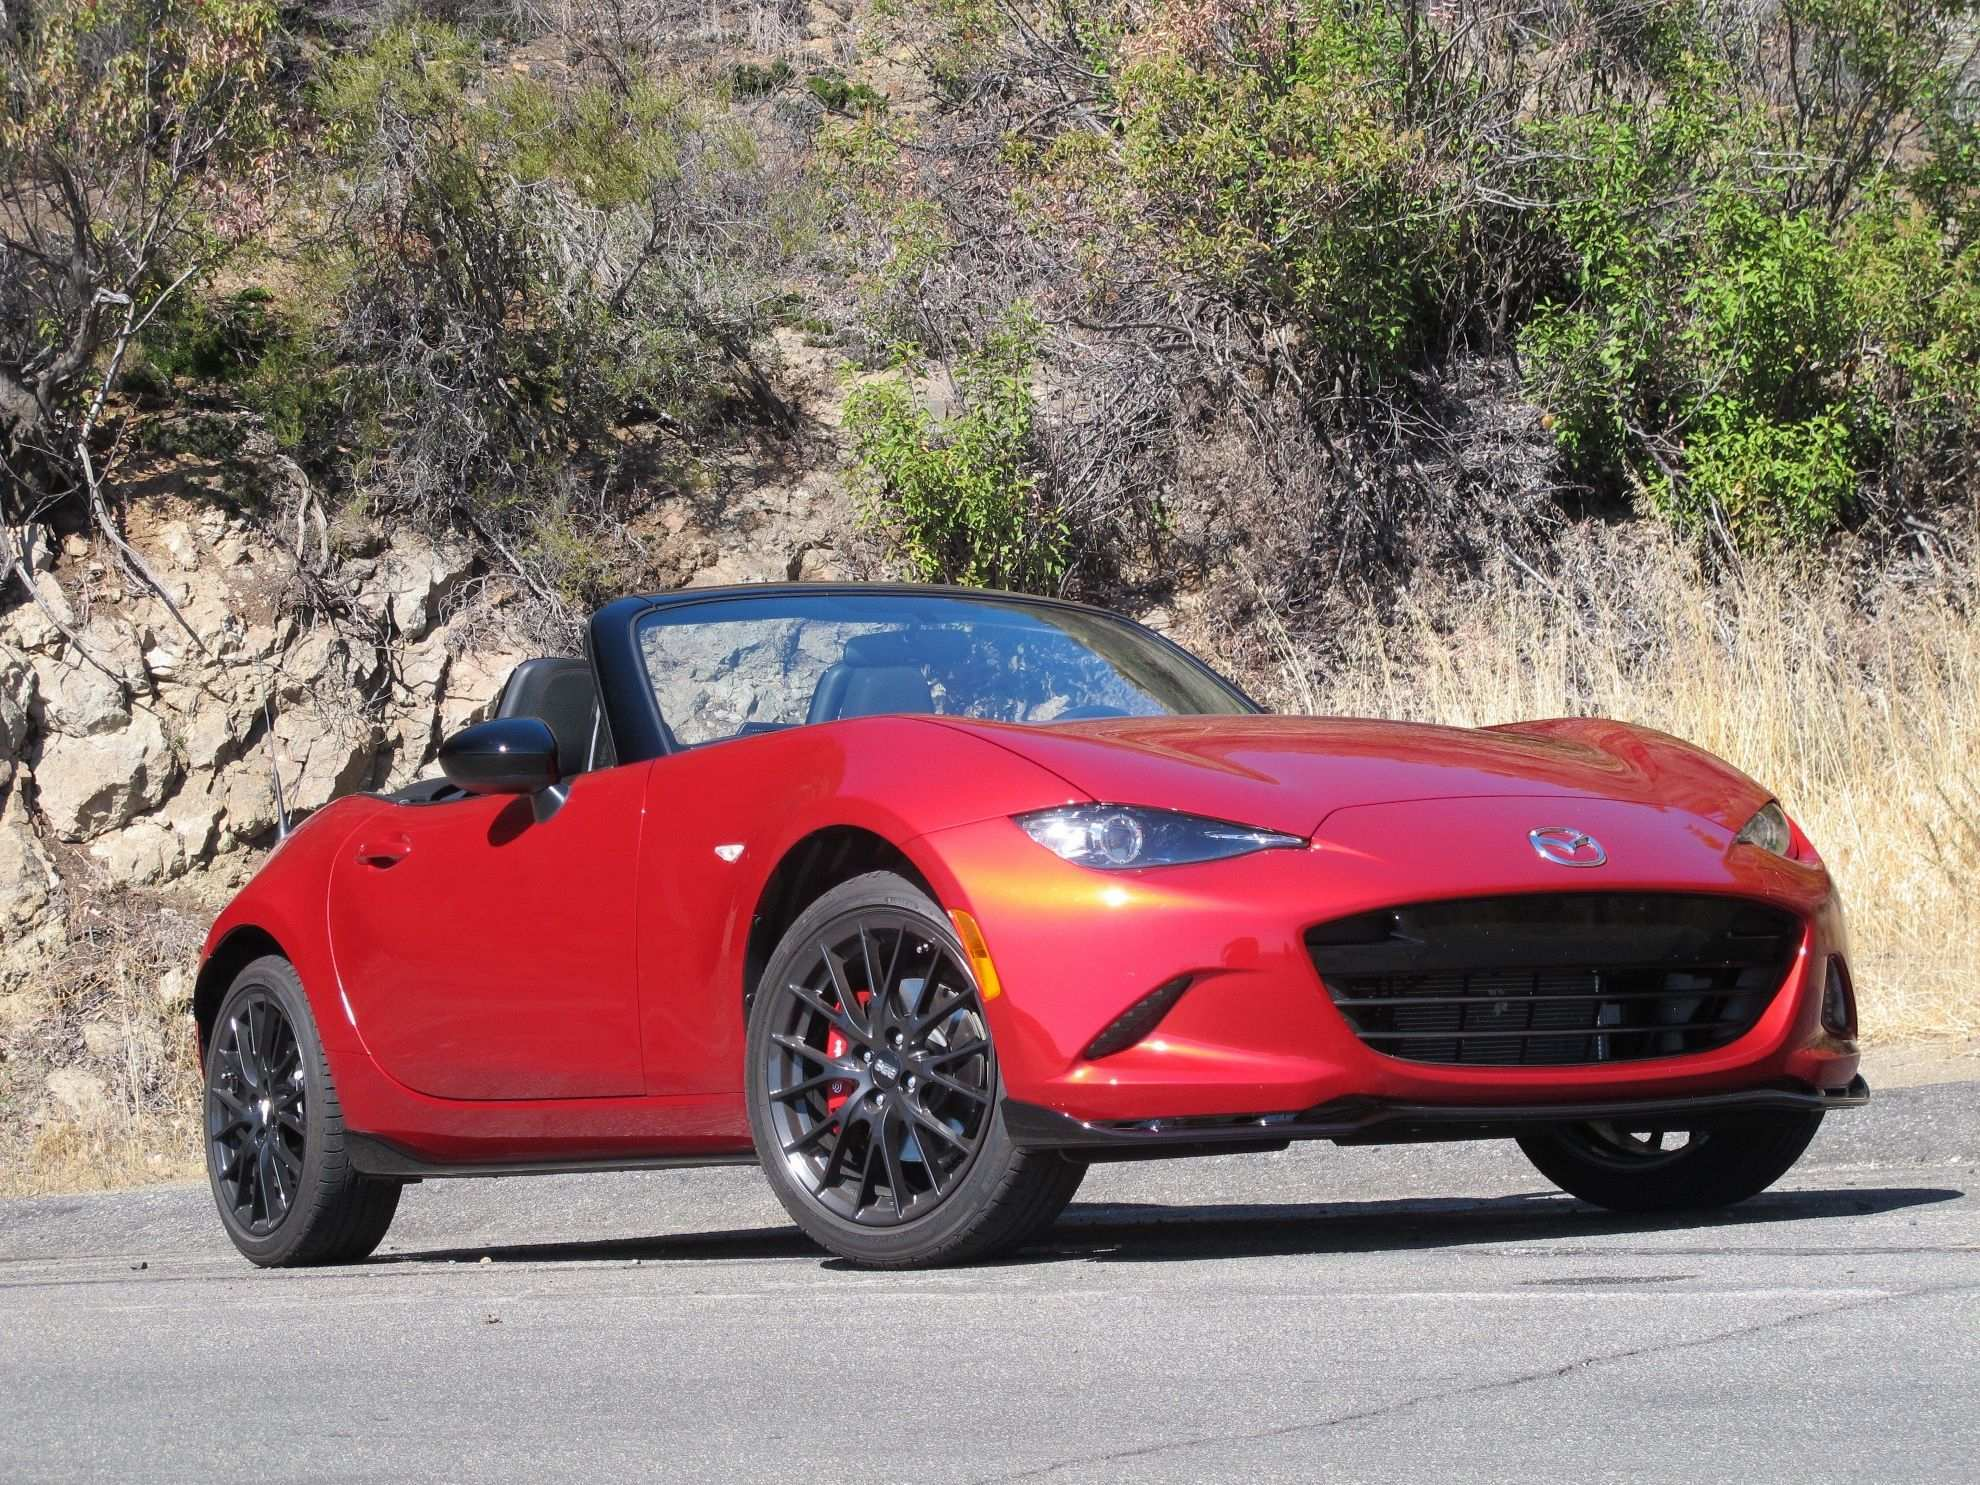 19 Best 2020 Mazda MX 5 Miata Images